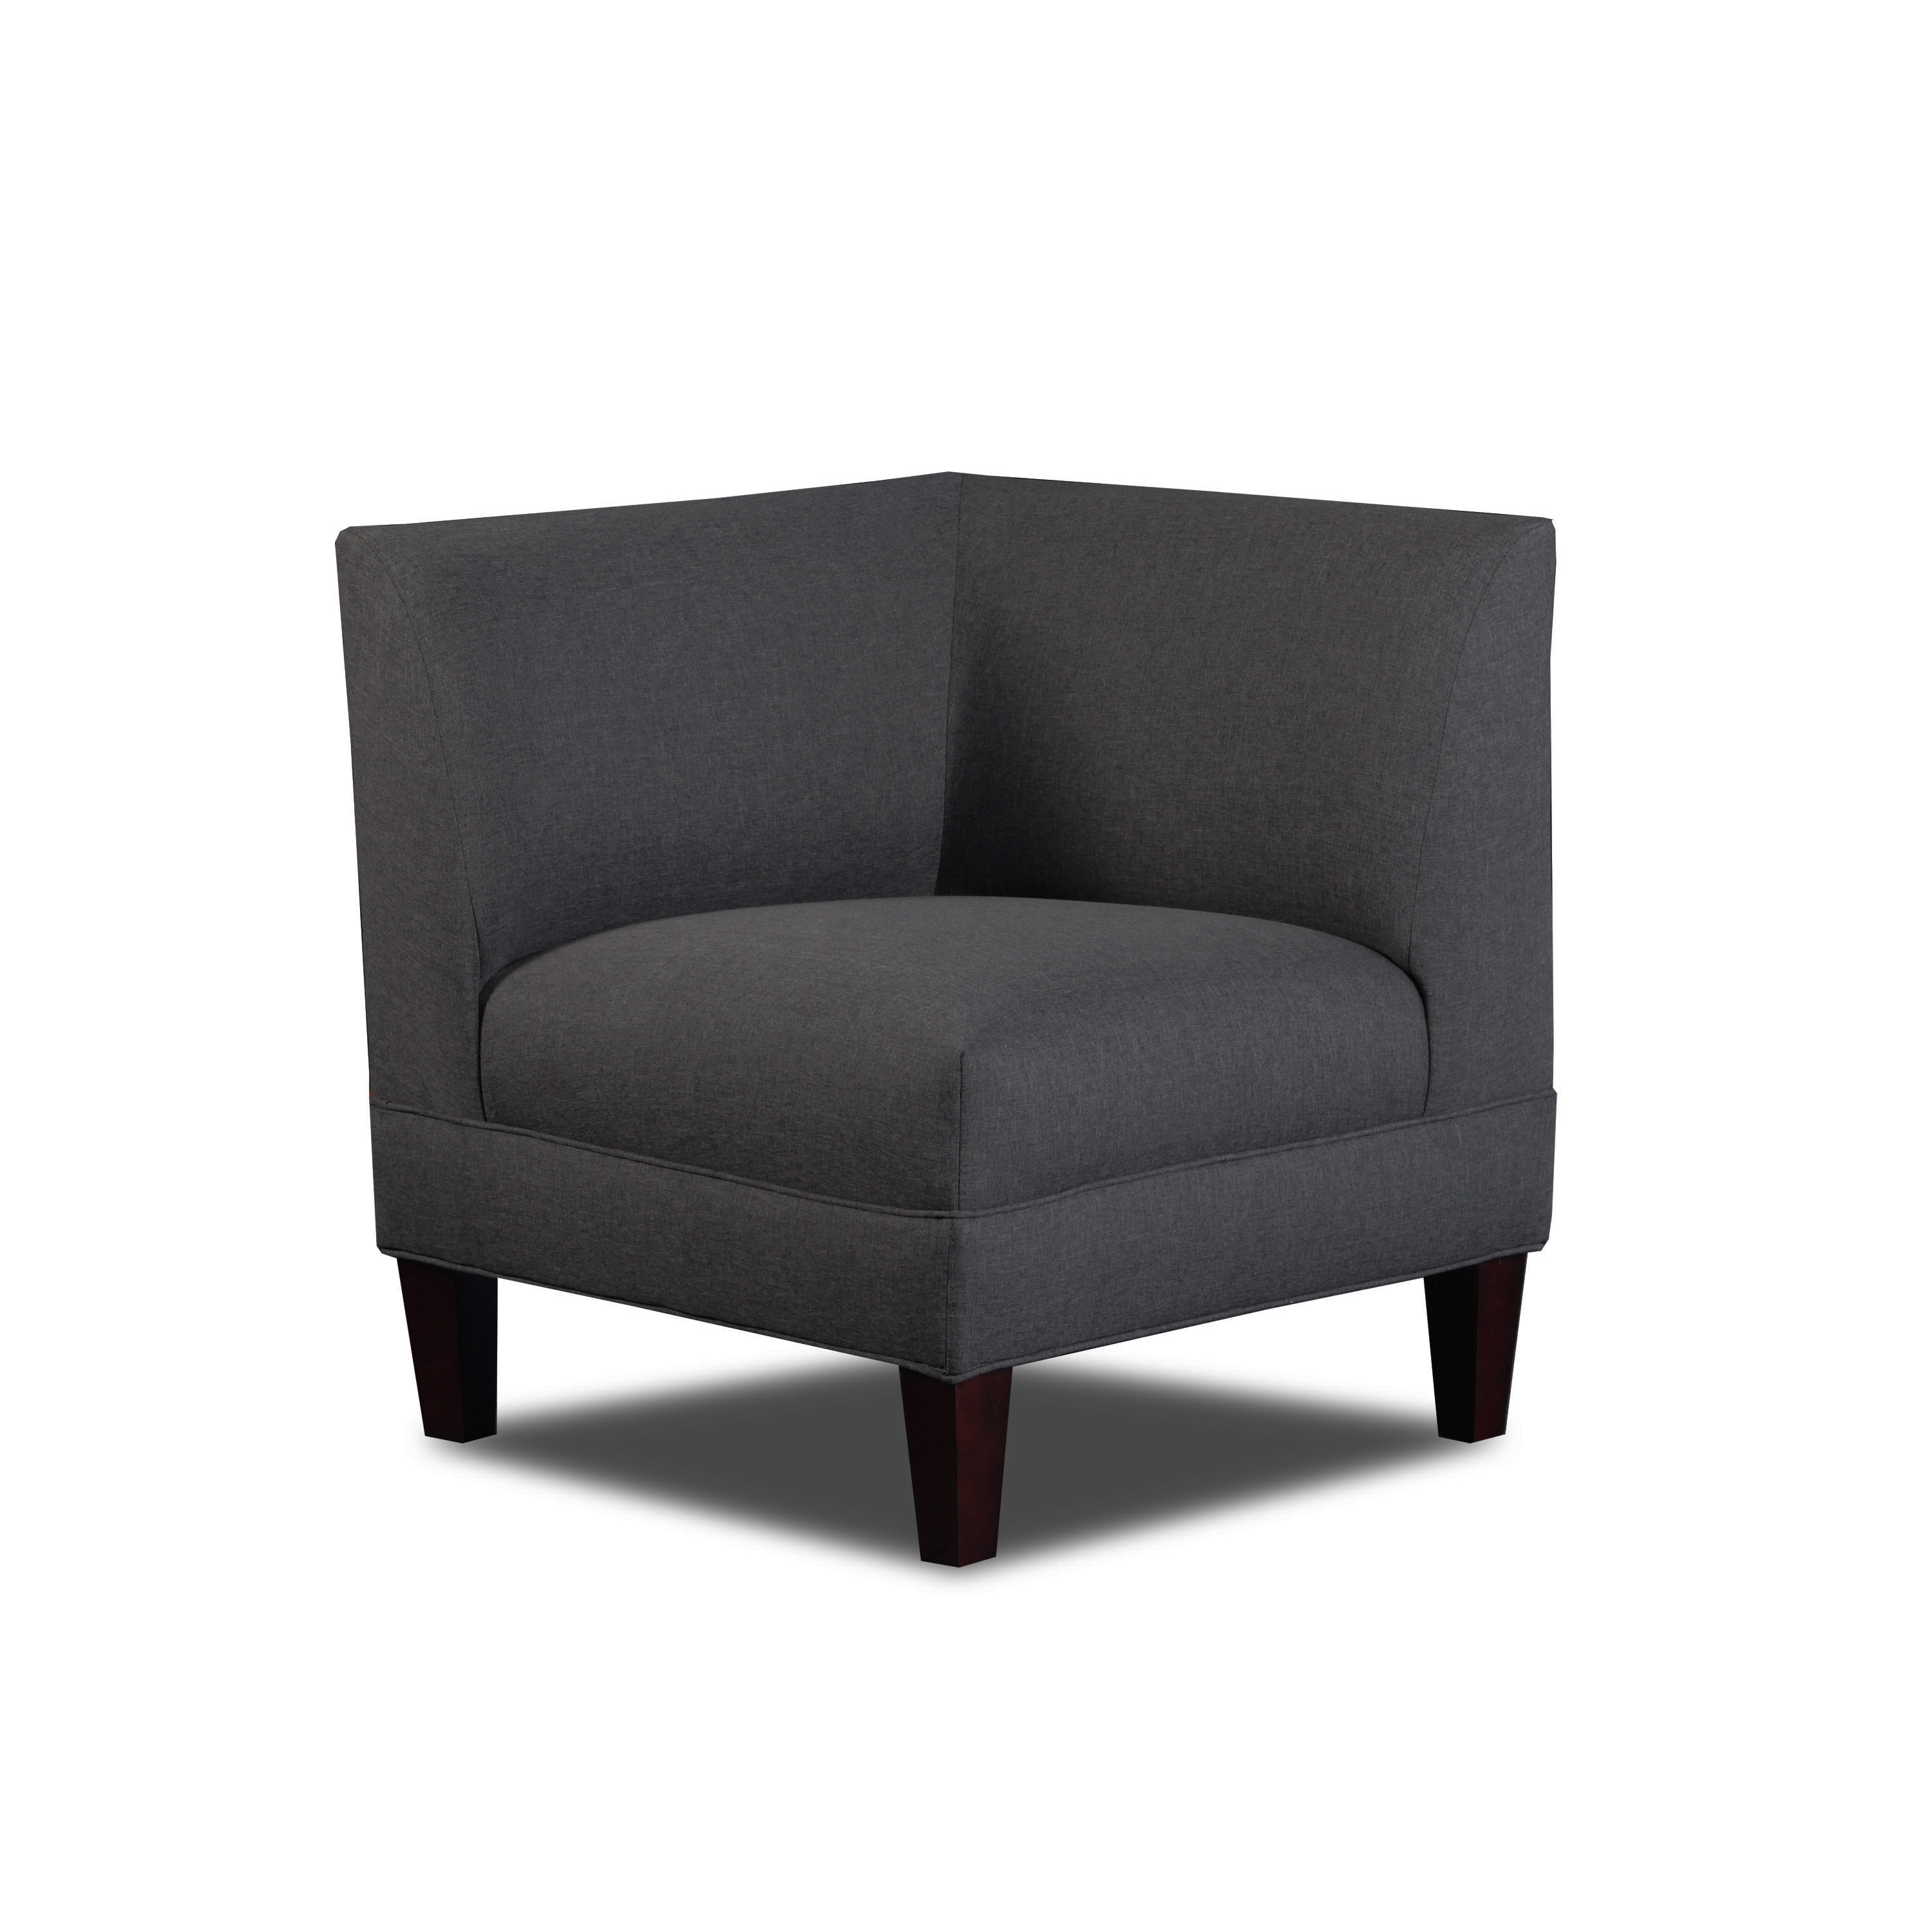 Carolina Accents Briley Corner Chair Gray by Overstock